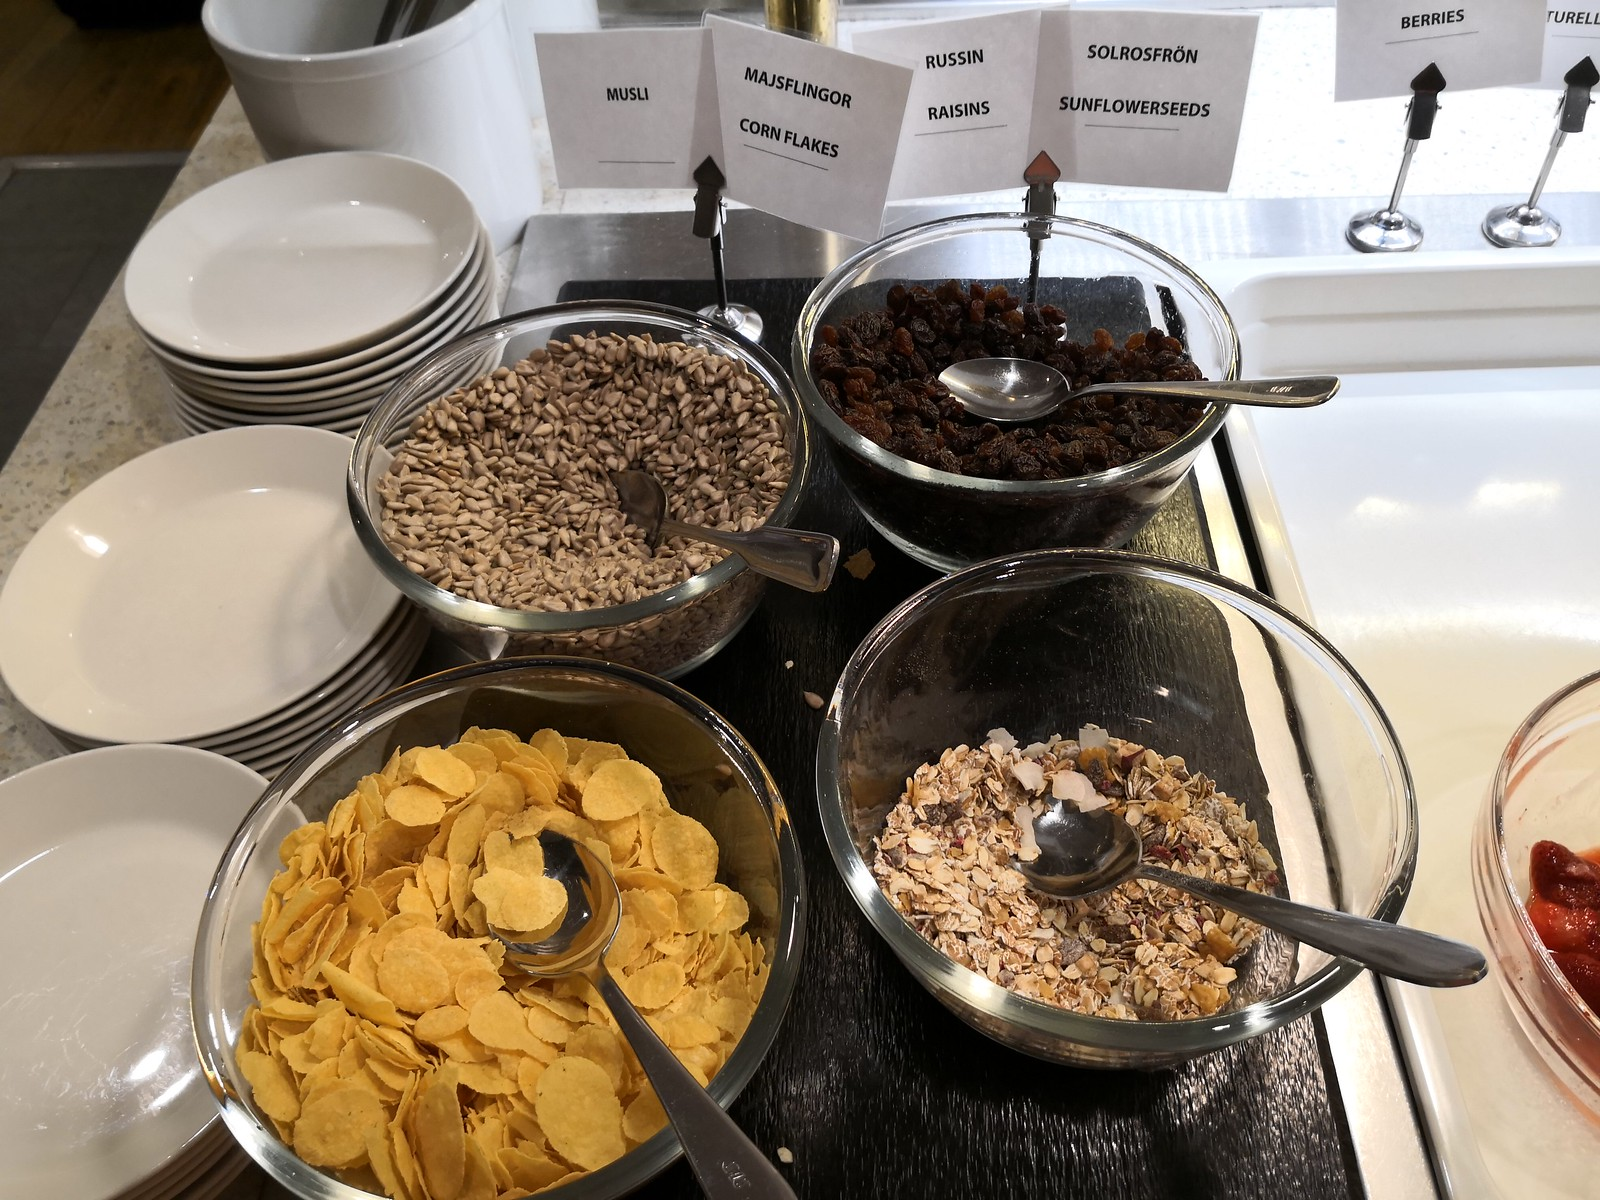 Cereal choices on the buffet